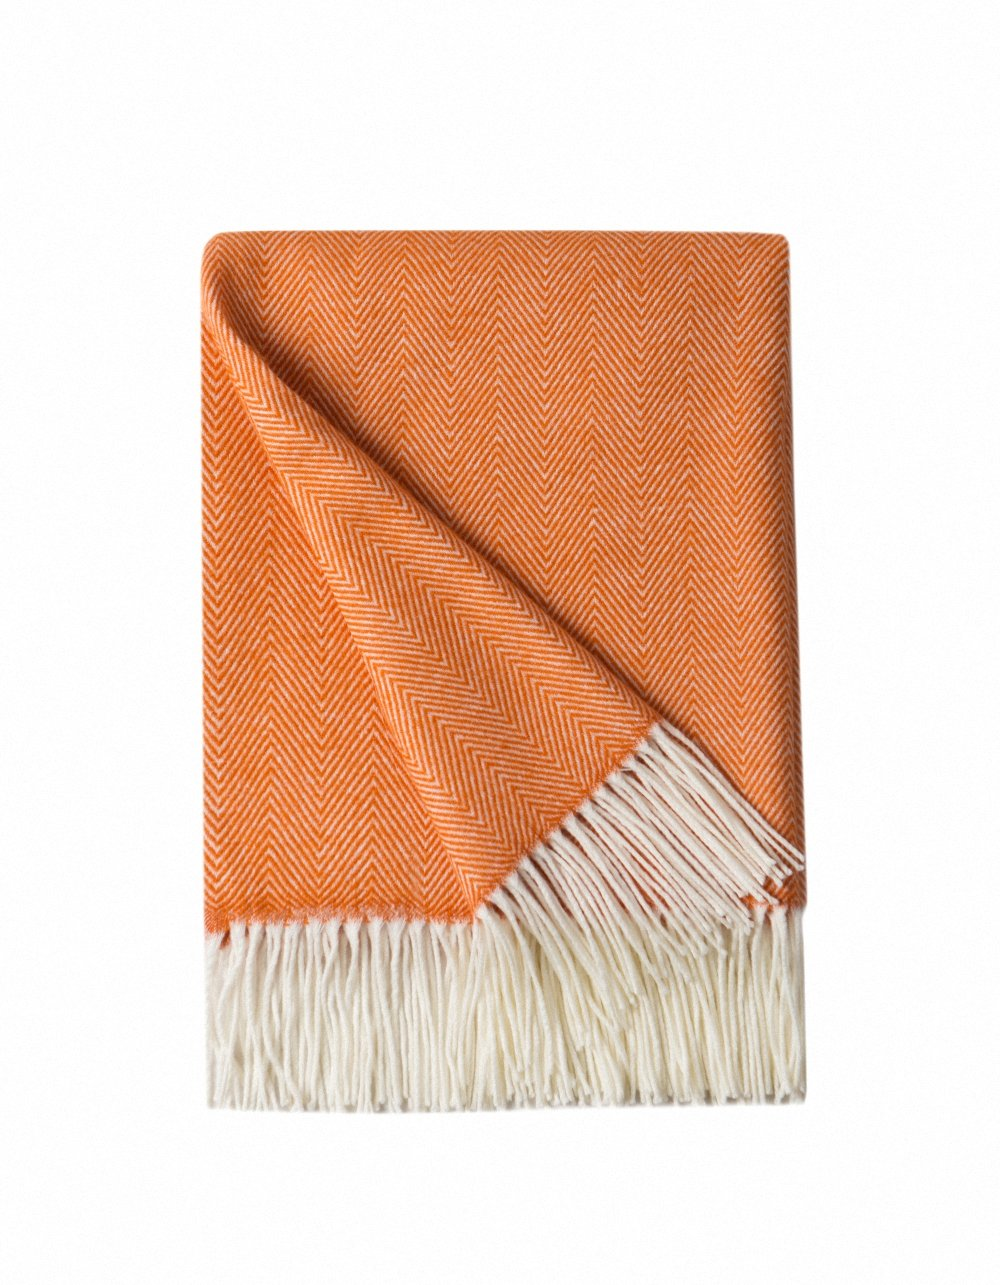 Bourina Decorative Herringbone Faux Cashmere Fringe Throw Blanket Lightweight Soft Cozy for Bed or Sofa Farmhouse Outdoor Throw Blankets, 50'' x 60'', Orange